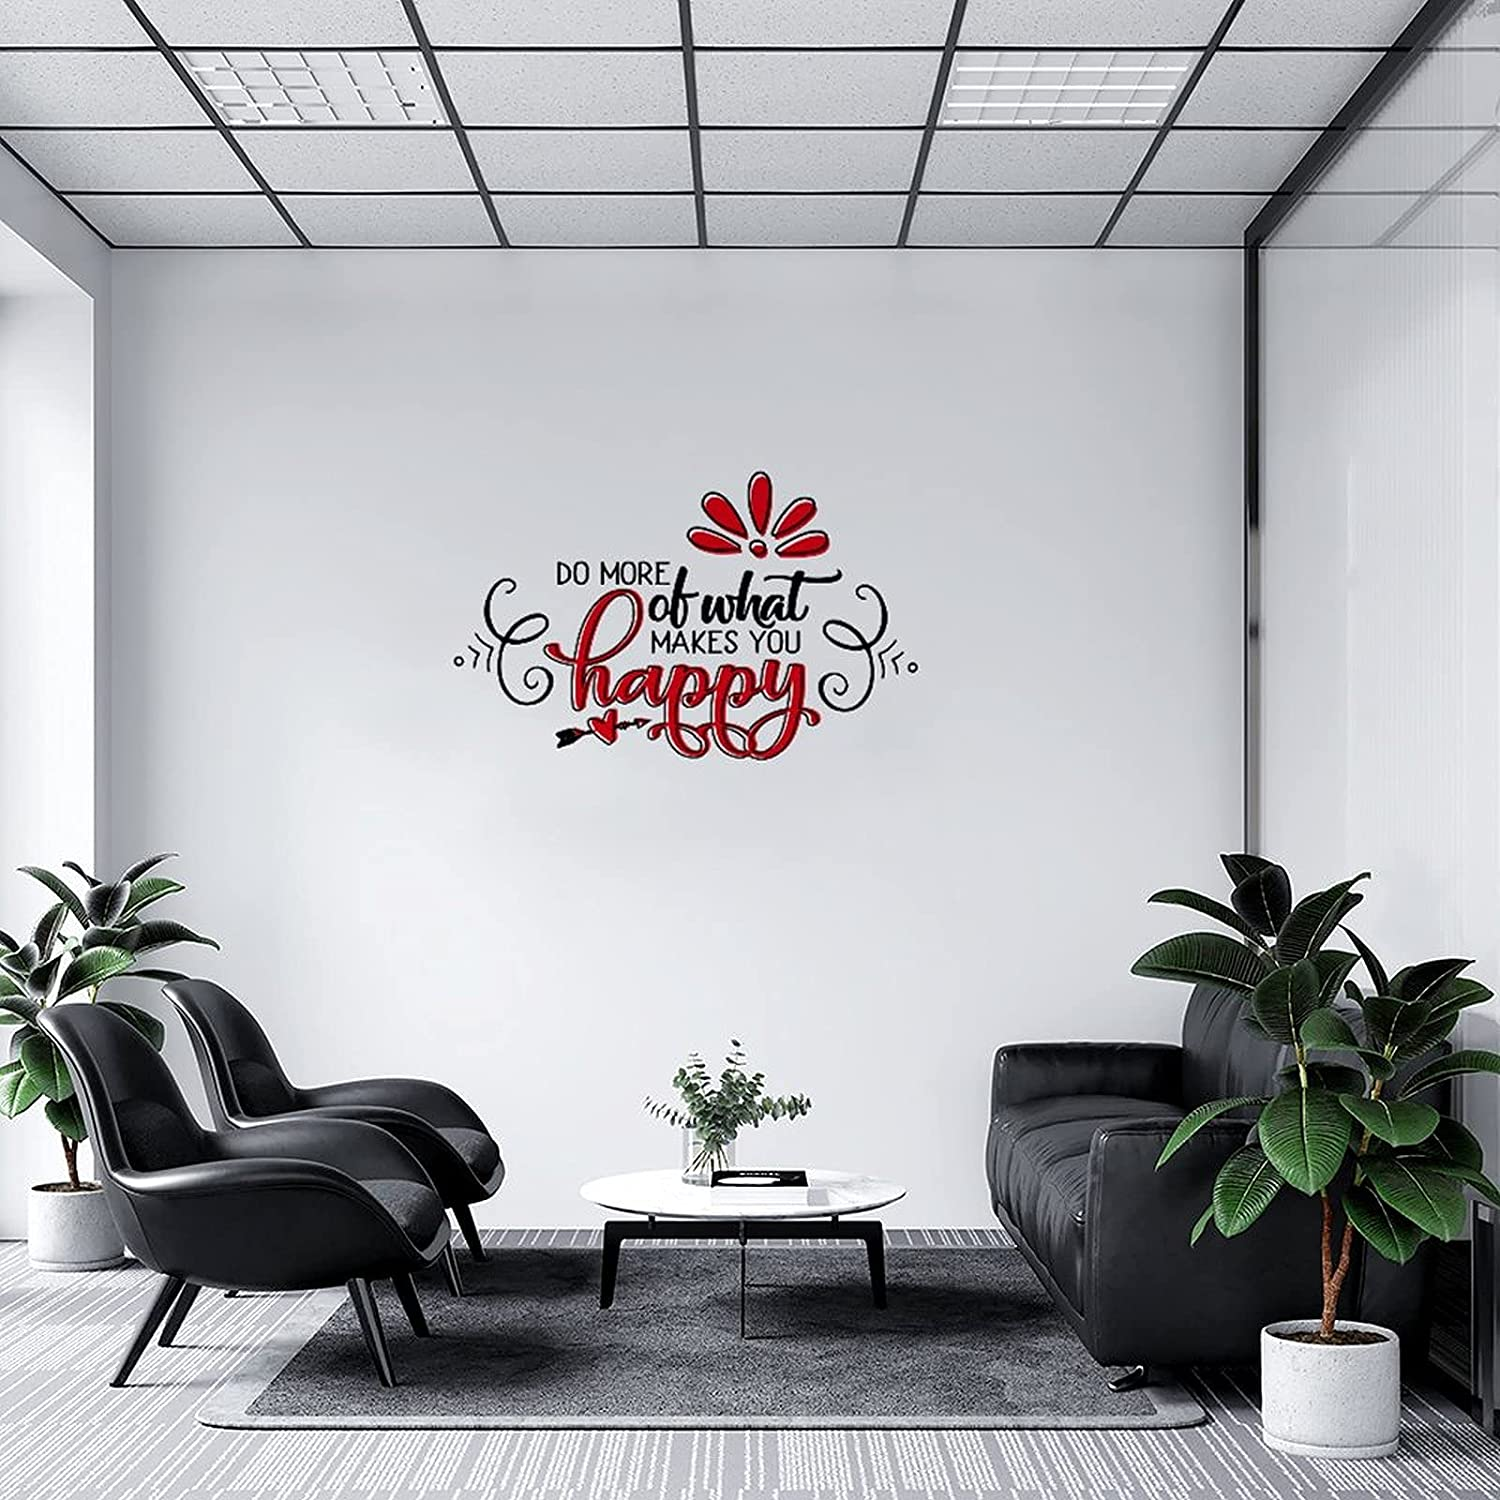 Wall Decal Do More of What All items free shipping Makes You DIY Soldering Art Murals Happy